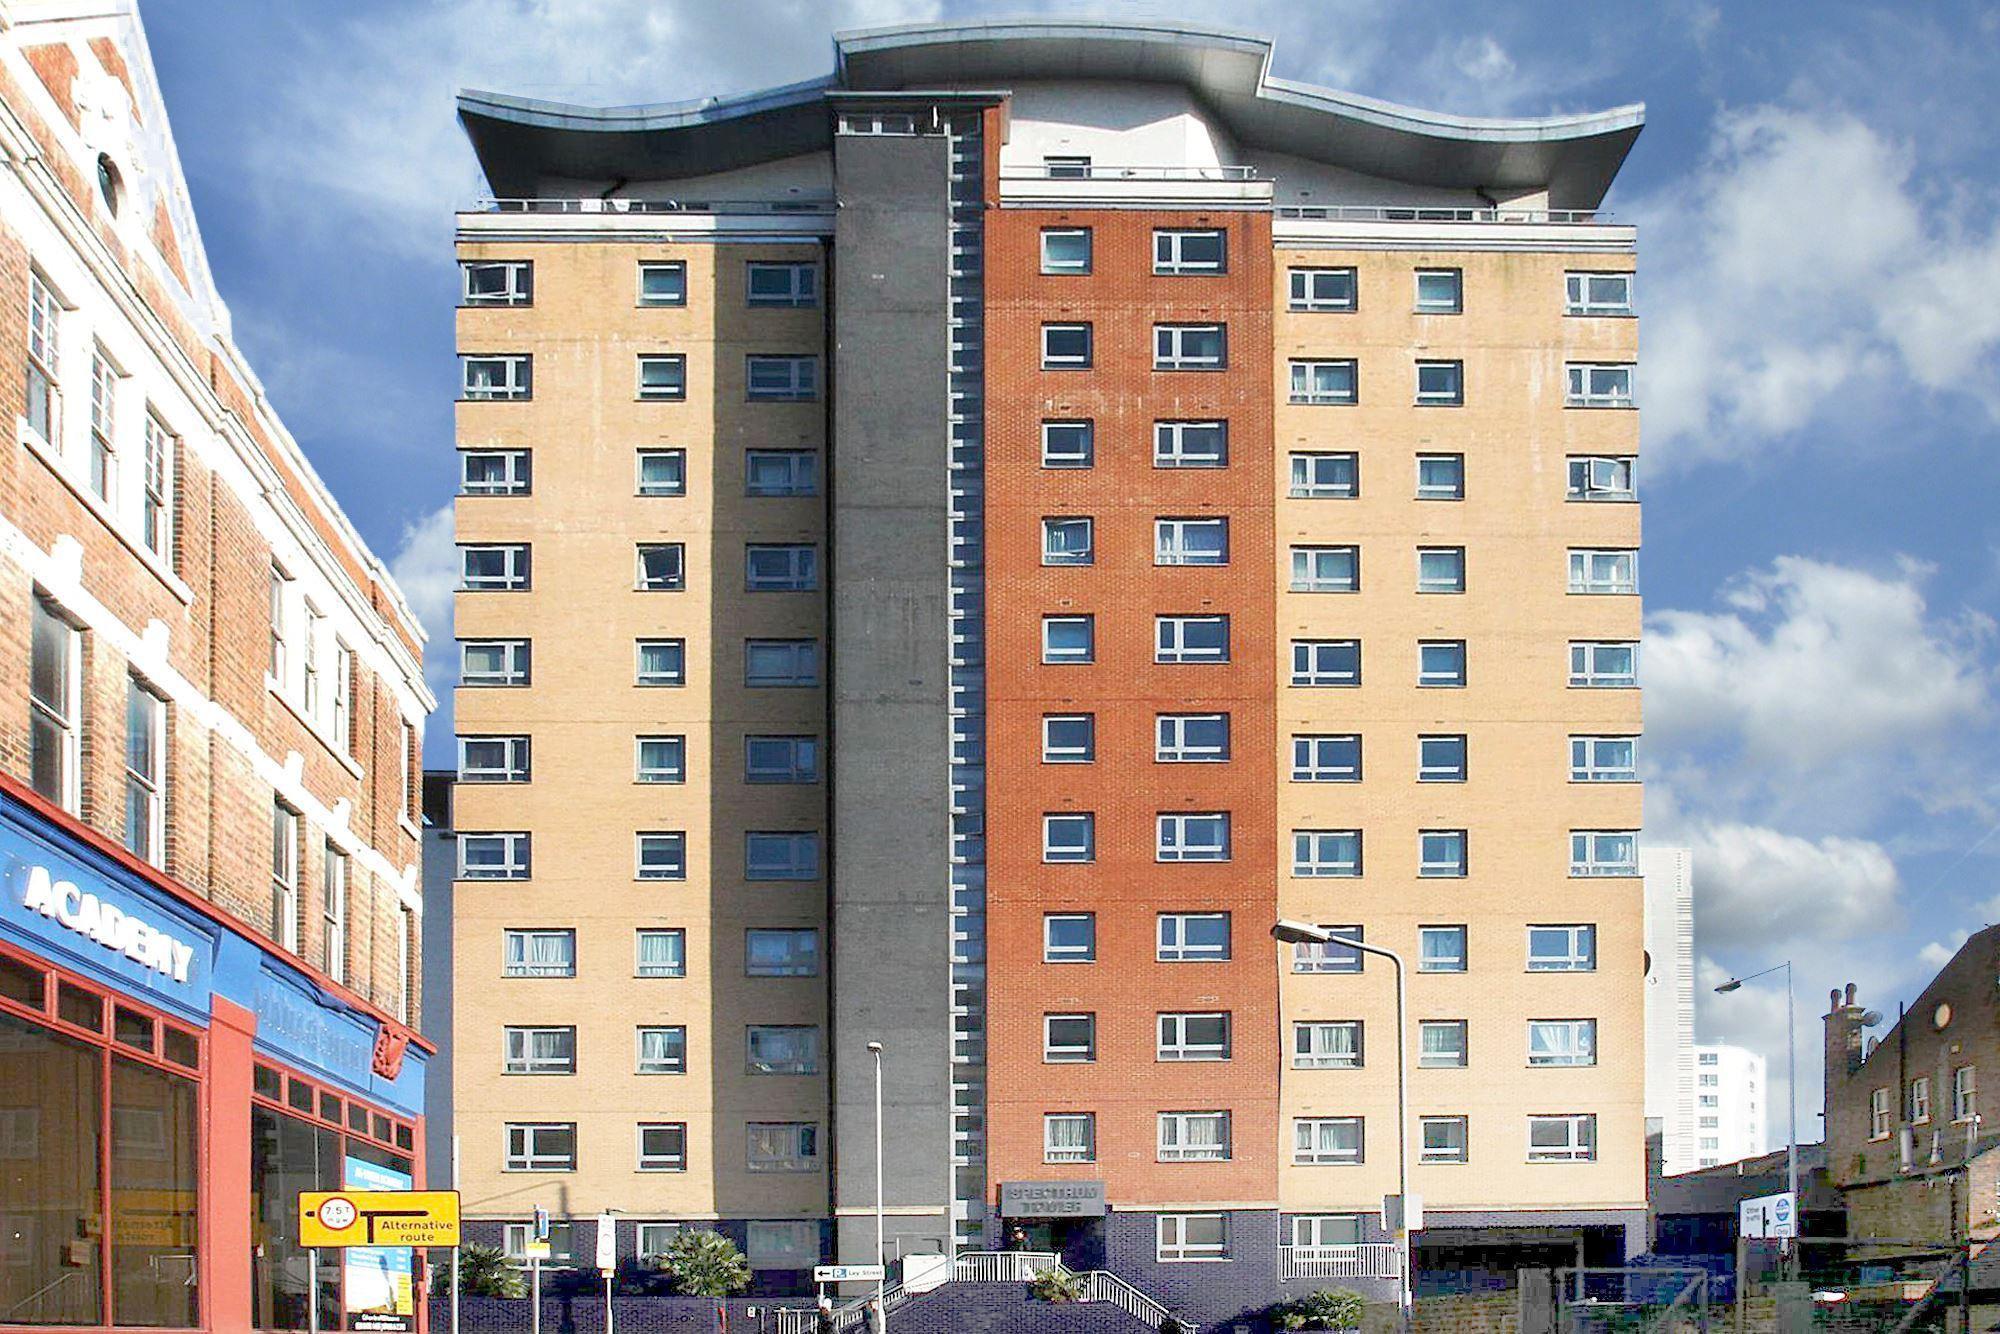 Ilford IG1, 2 Bedroom 2 Bathroom apartment – £290pw